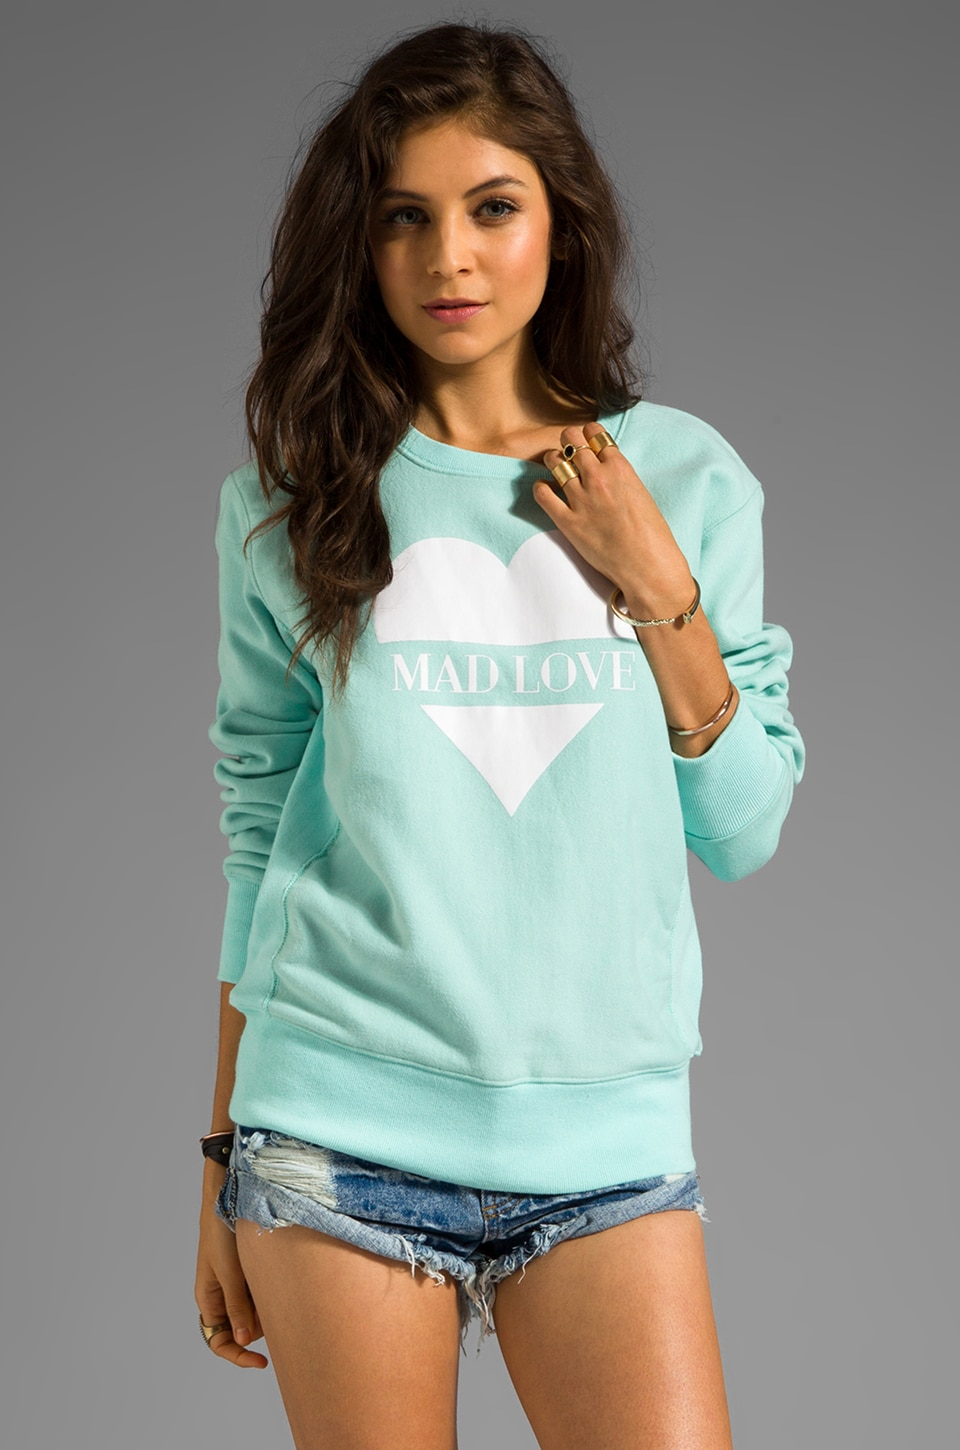 B-side by Wale Mad Love Sweatshirt in Sky Blue